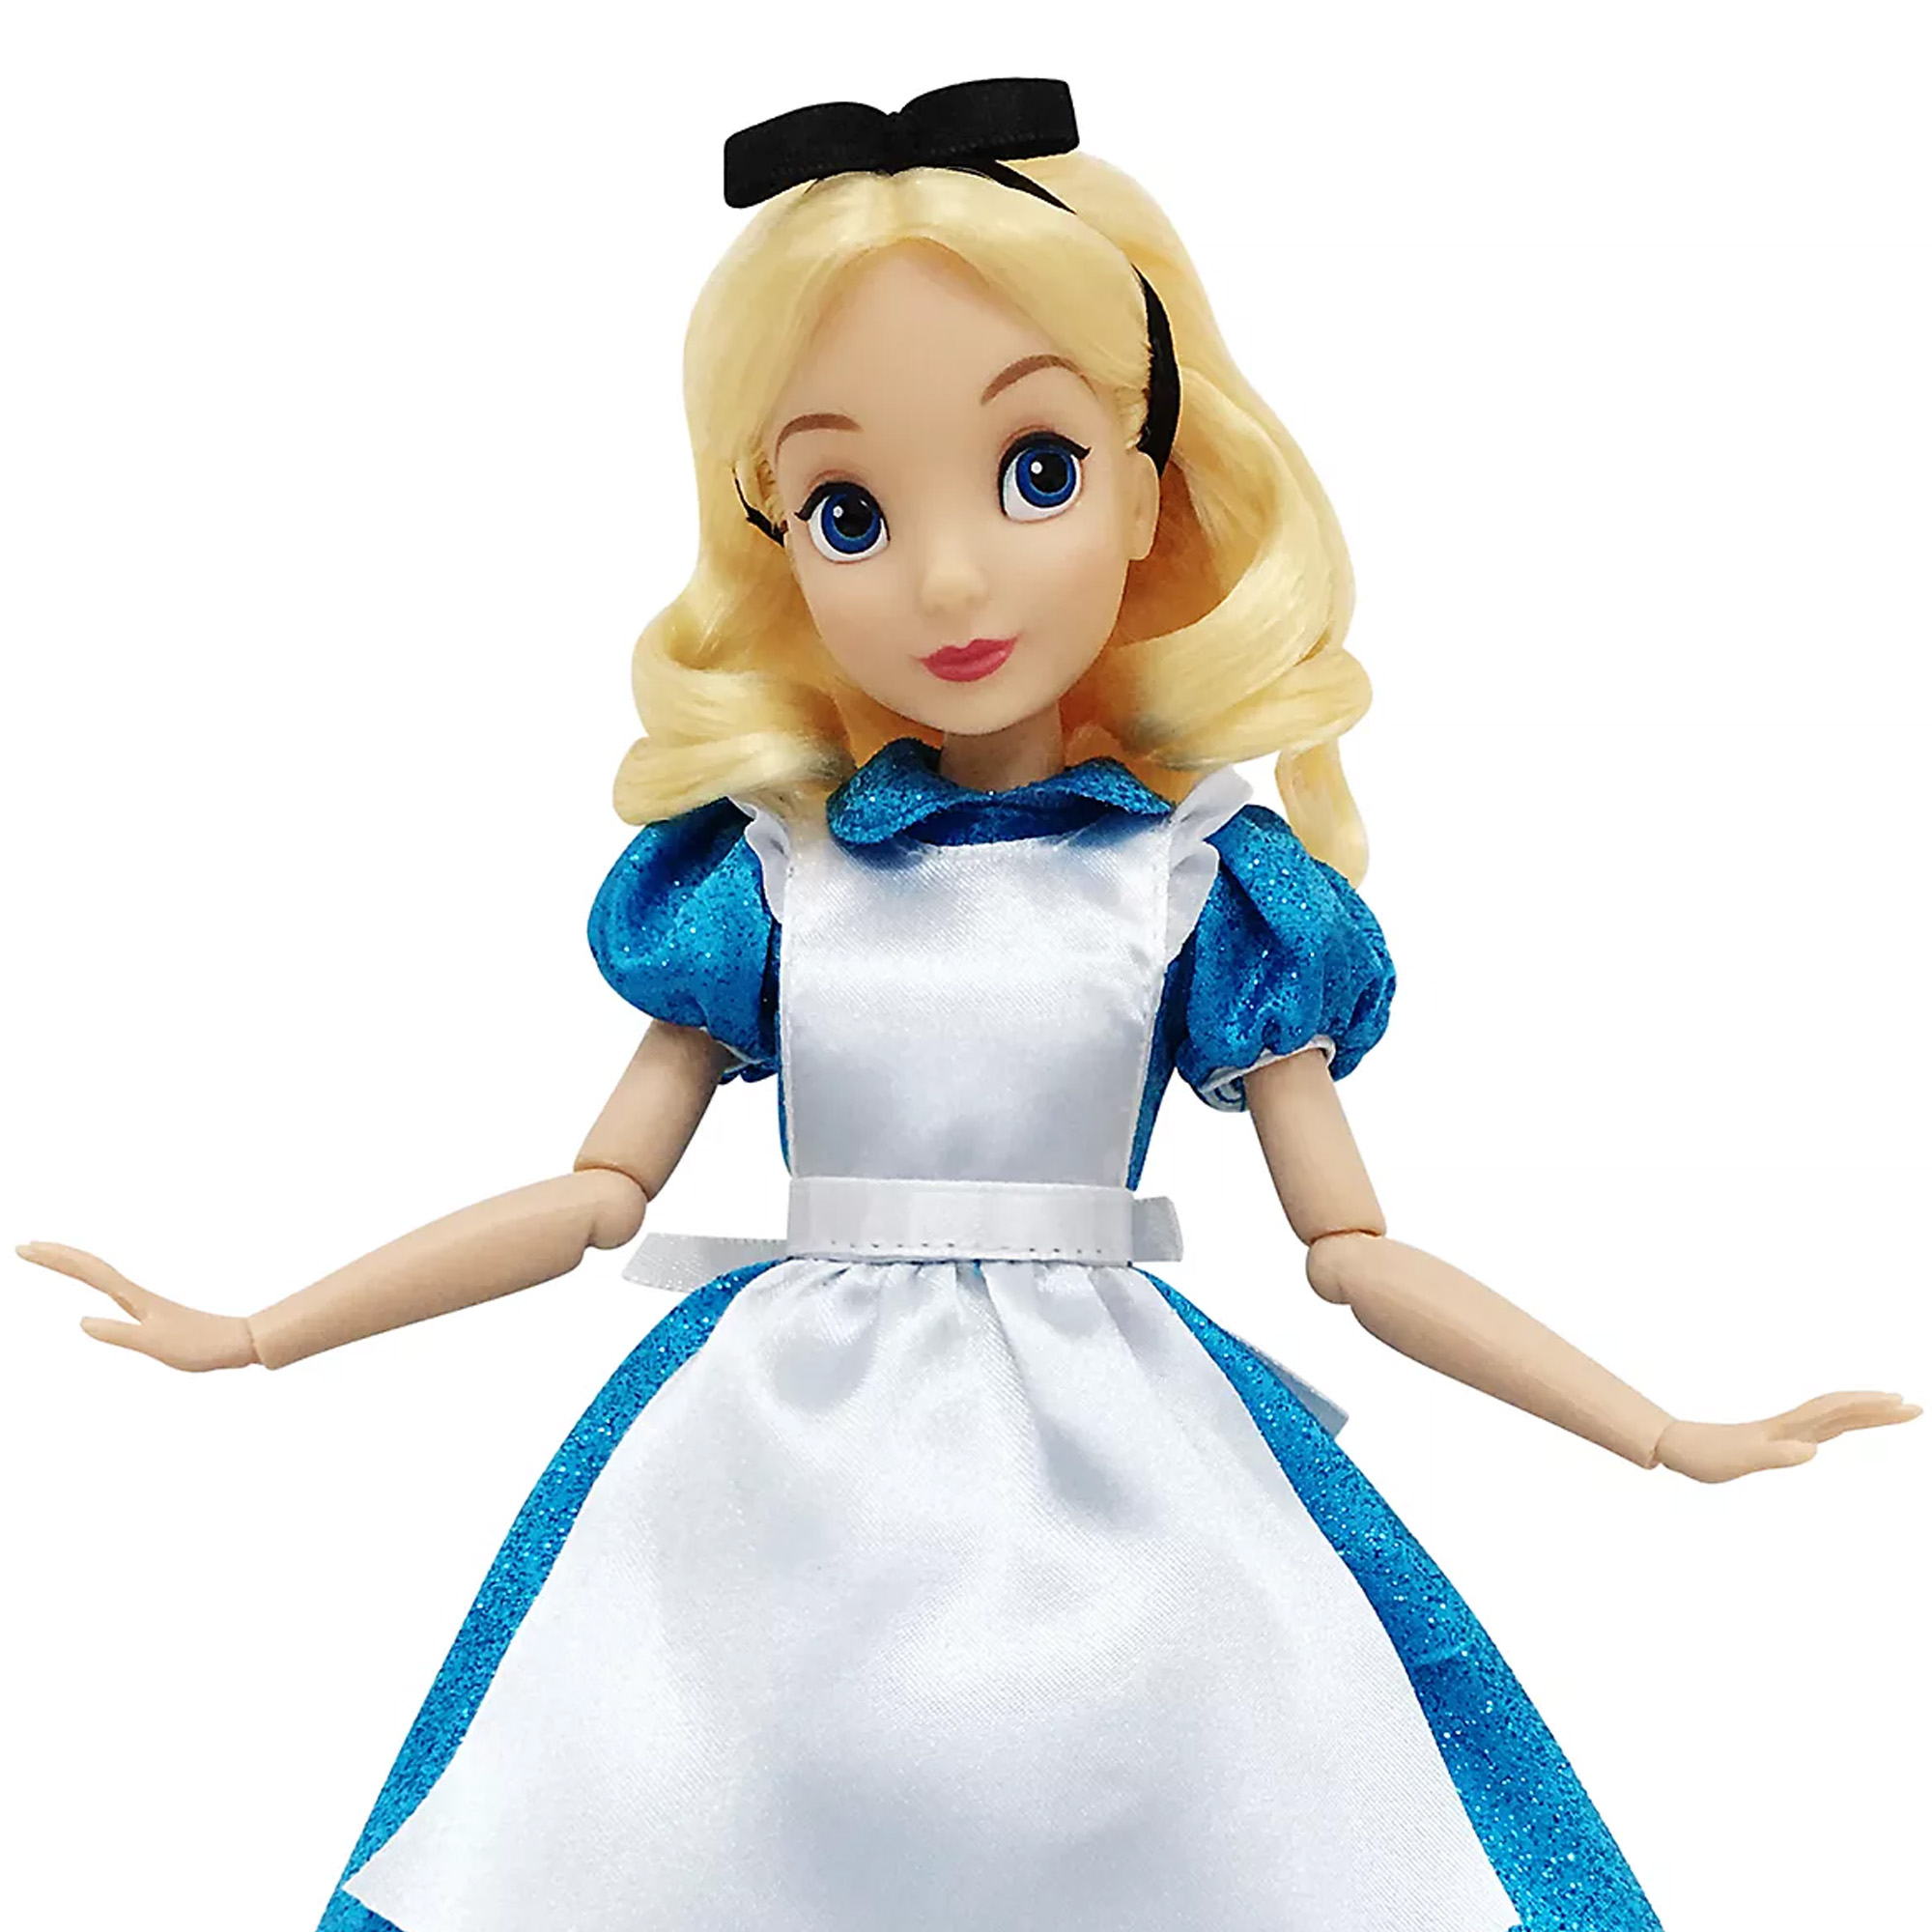 Disney Alice Doll from Alice in Wonderland Disney Store